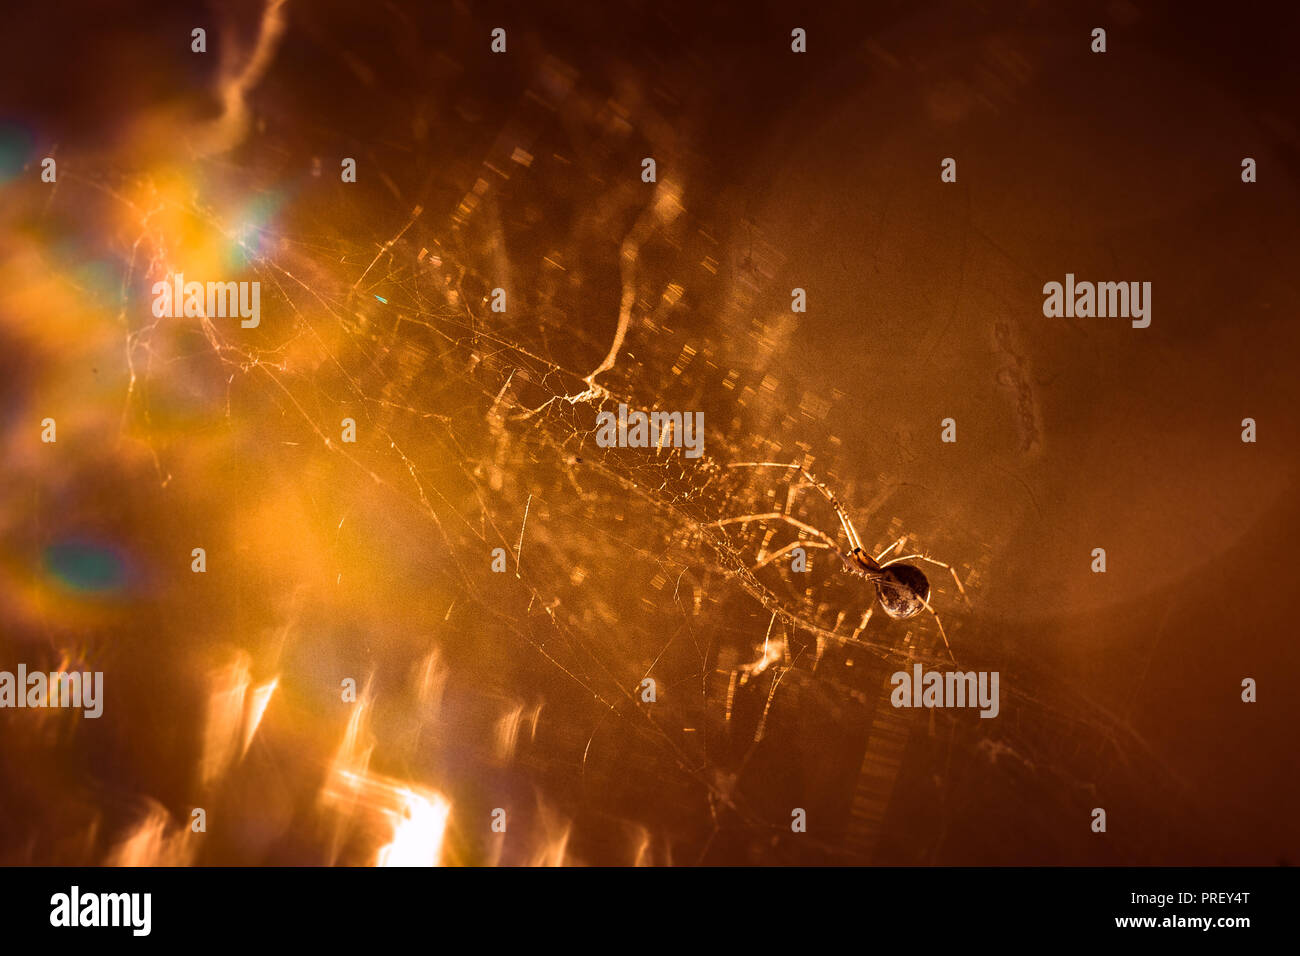 spider is sitting on a cobweb close-up. - Stock Image